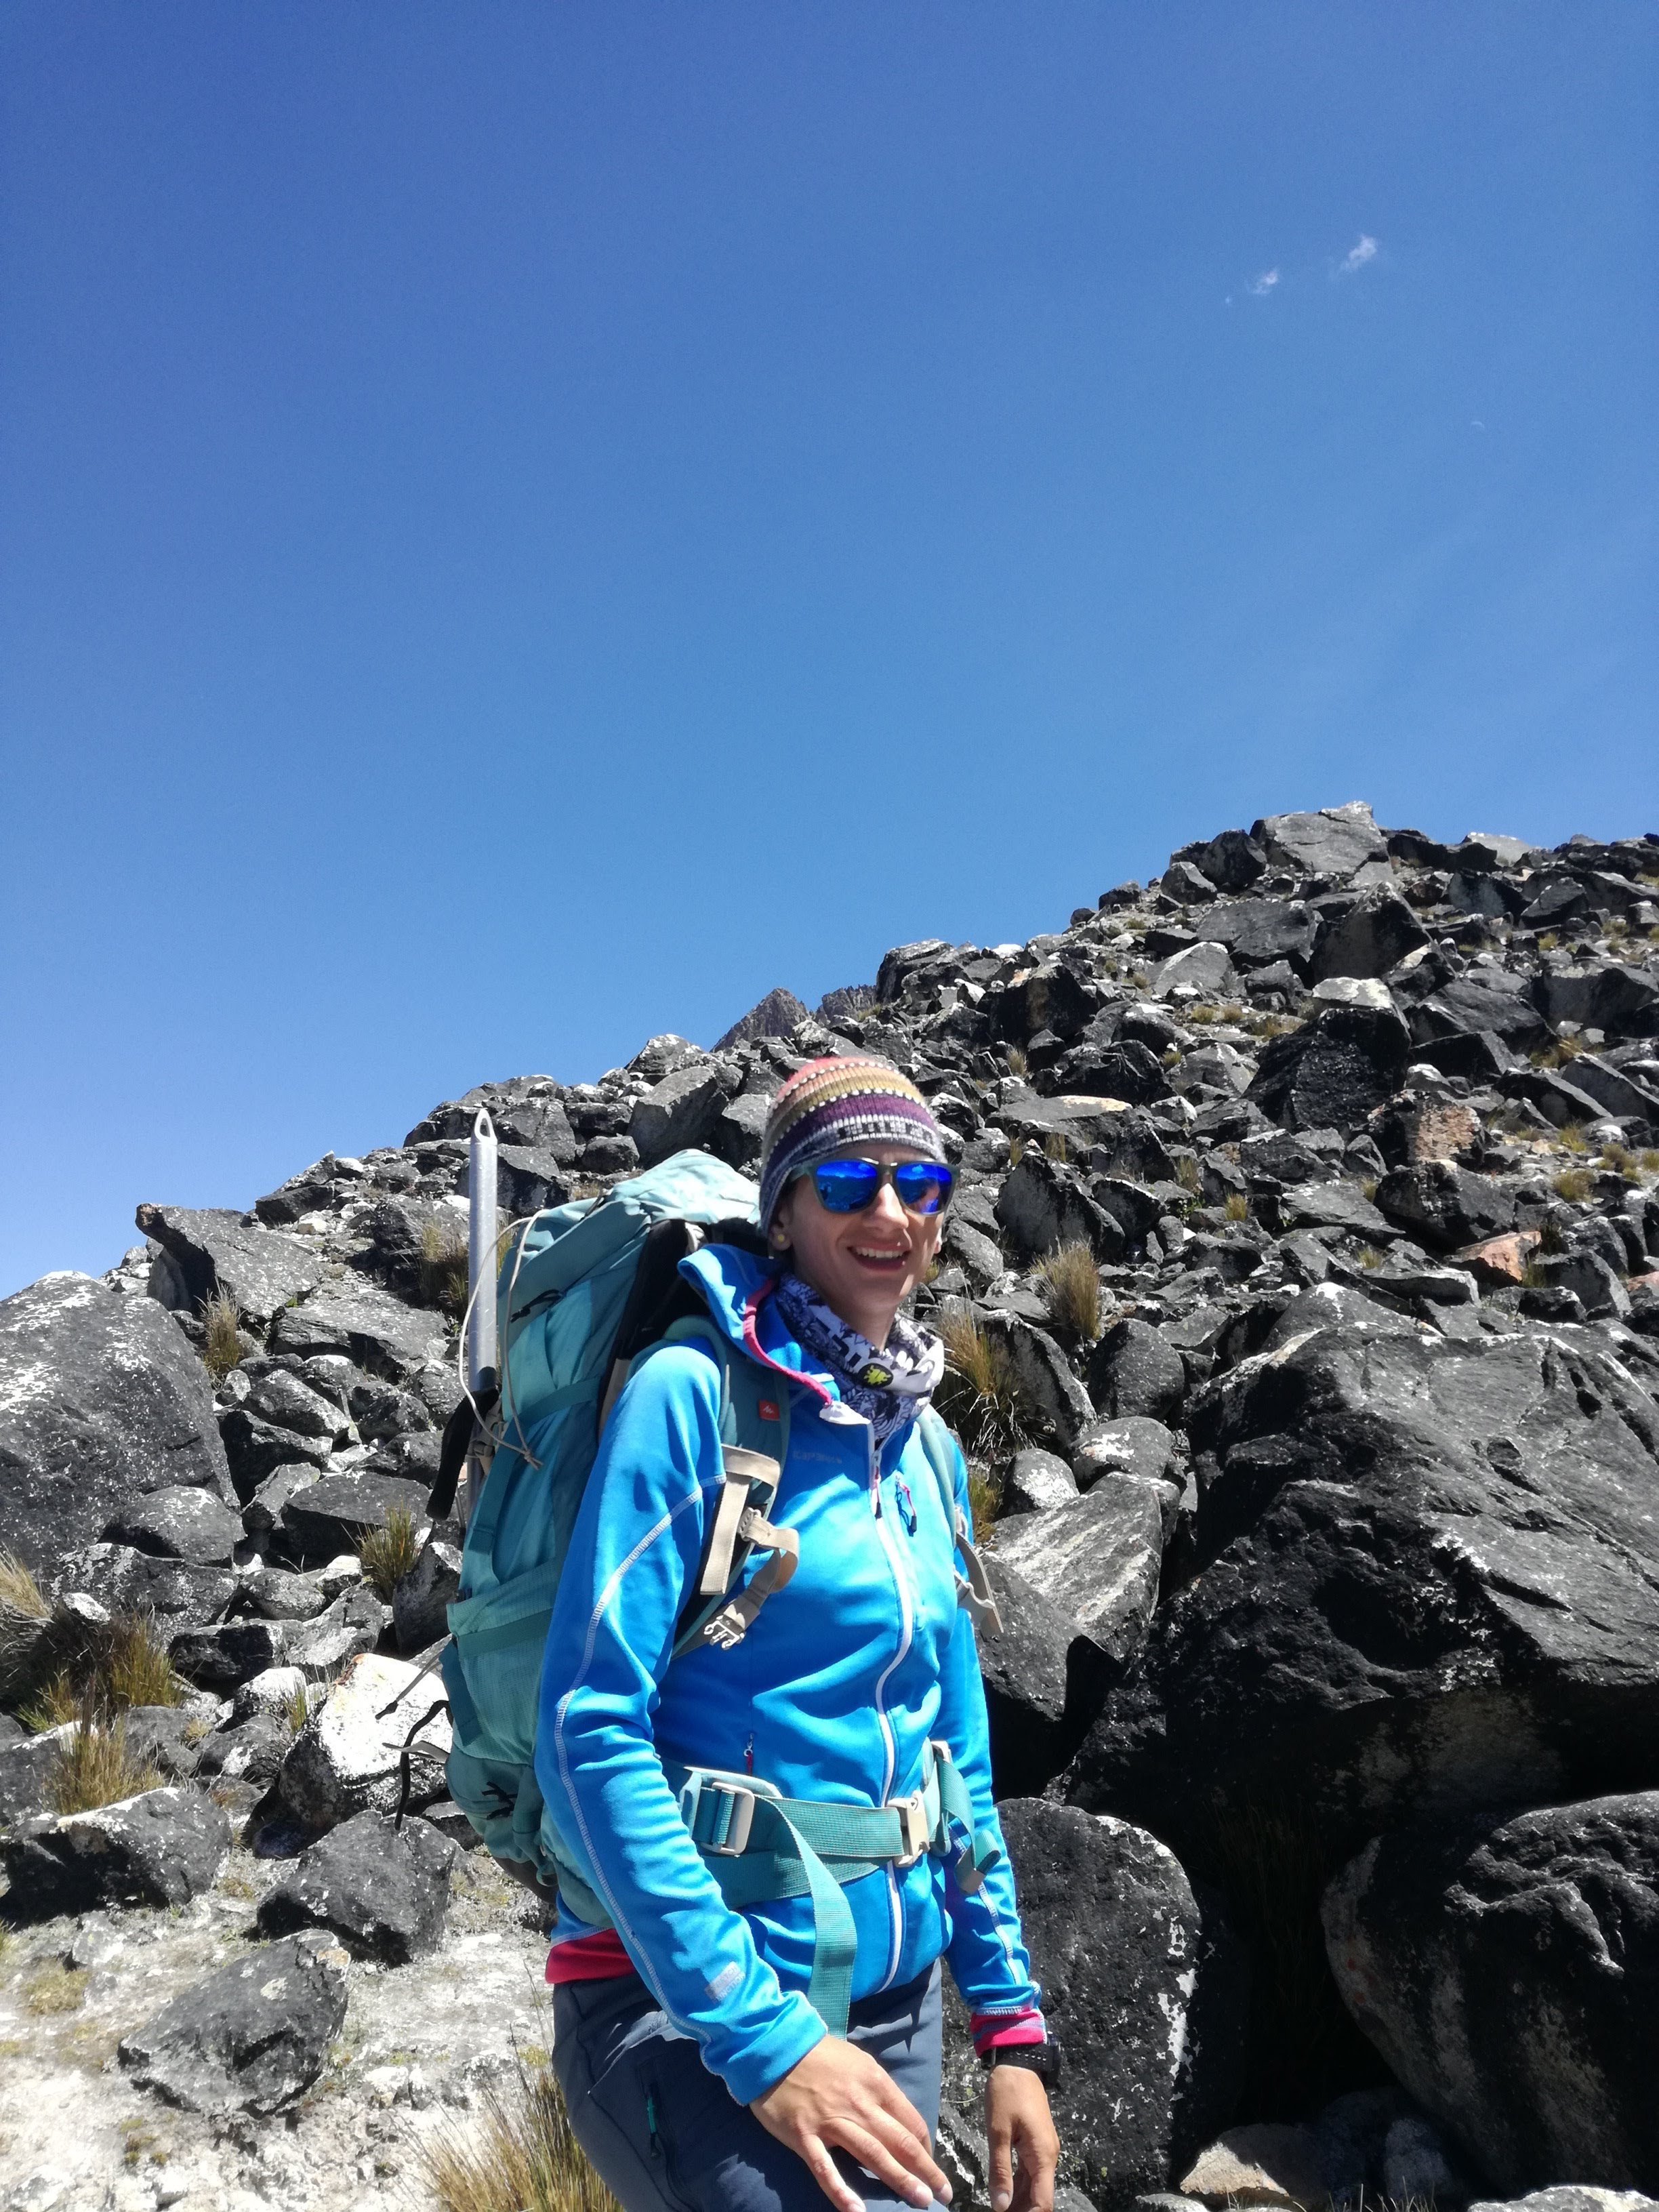 Wilderness Clothing for Women